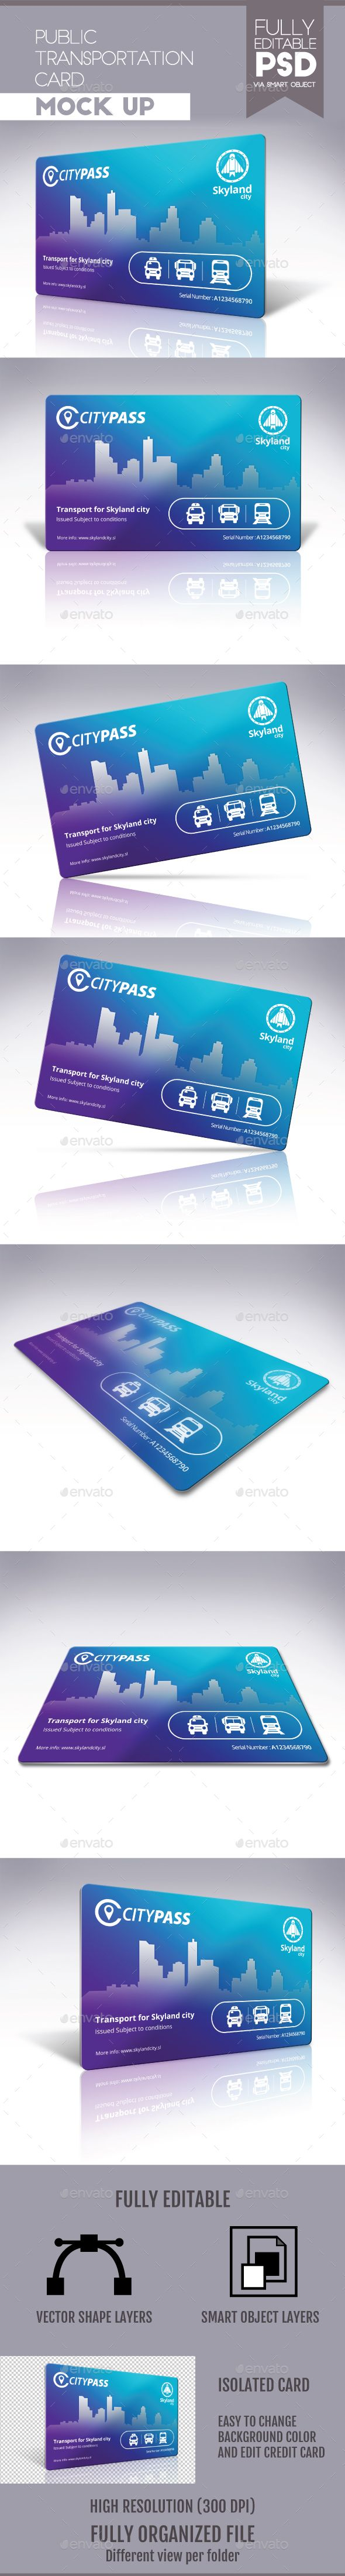 Print Mockup - Public Transportation Card - Print Mockup by doghead.   #TuesdayMotivation #UserInterface #UIUX #TuesdayThoughts #TuesdayWisdom #BlackFriday #PresentationTemplate#TuesdayFeeling #WebElements #CyberMonday #HappyTuesday #Logo #Graphic #Vectors #DesignTemplate